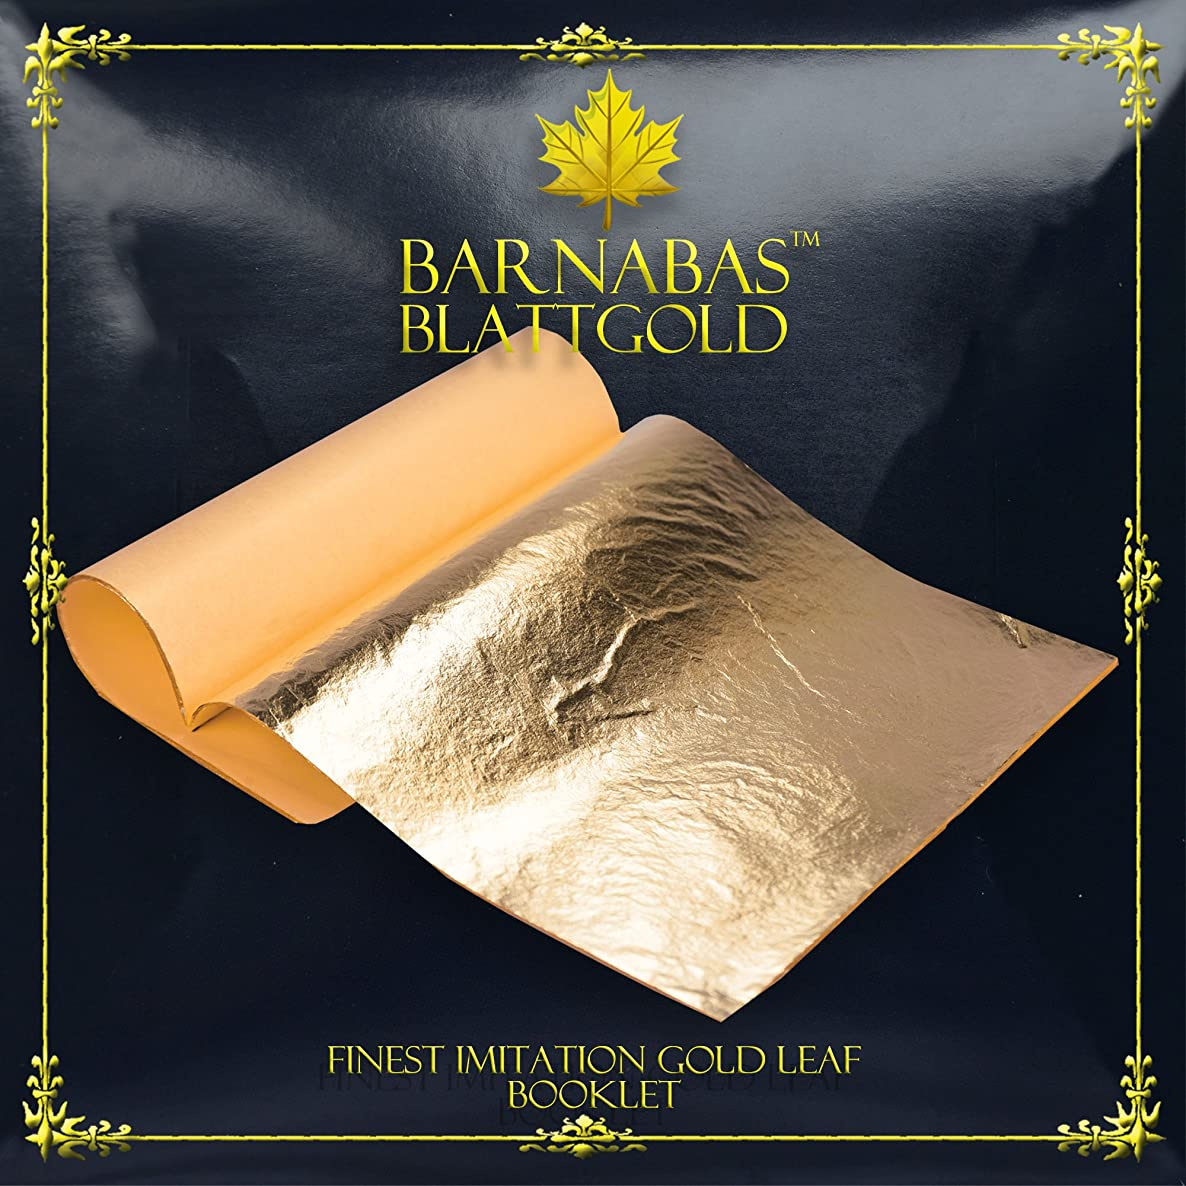 Imitation Gold Leaf Sheets - by Barnabas Blattgold - 100 Sheets - 5.5 inches Booklet - Loose Leaf